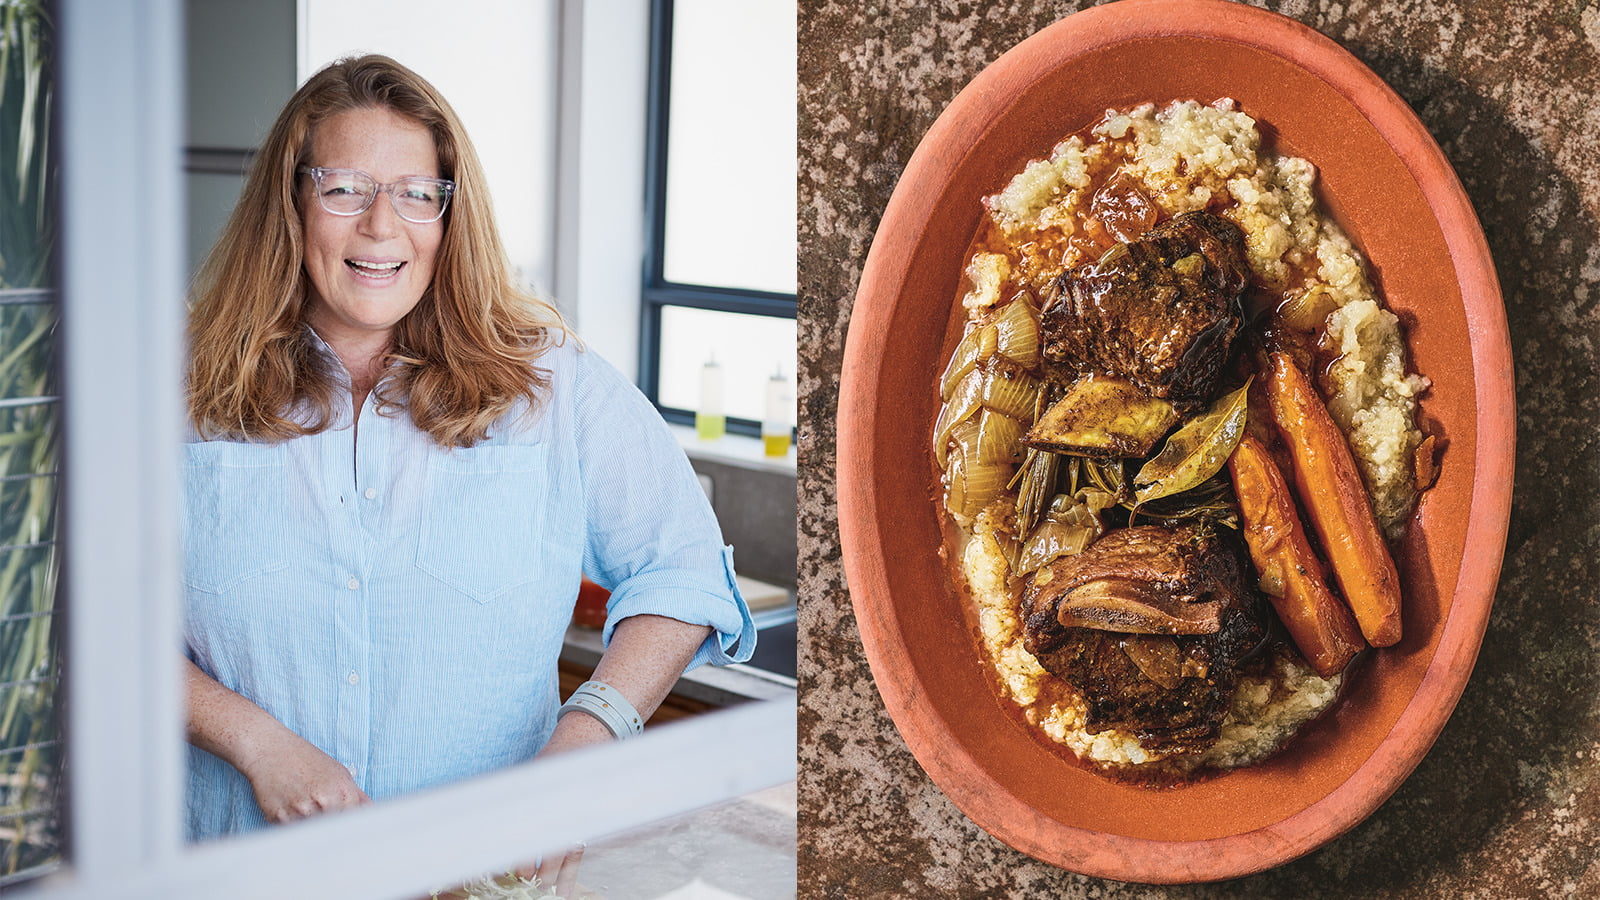 Adeena Sussman's Passover-friendly Braised Short Ribs With Roasted Kohlrabi Mash photo